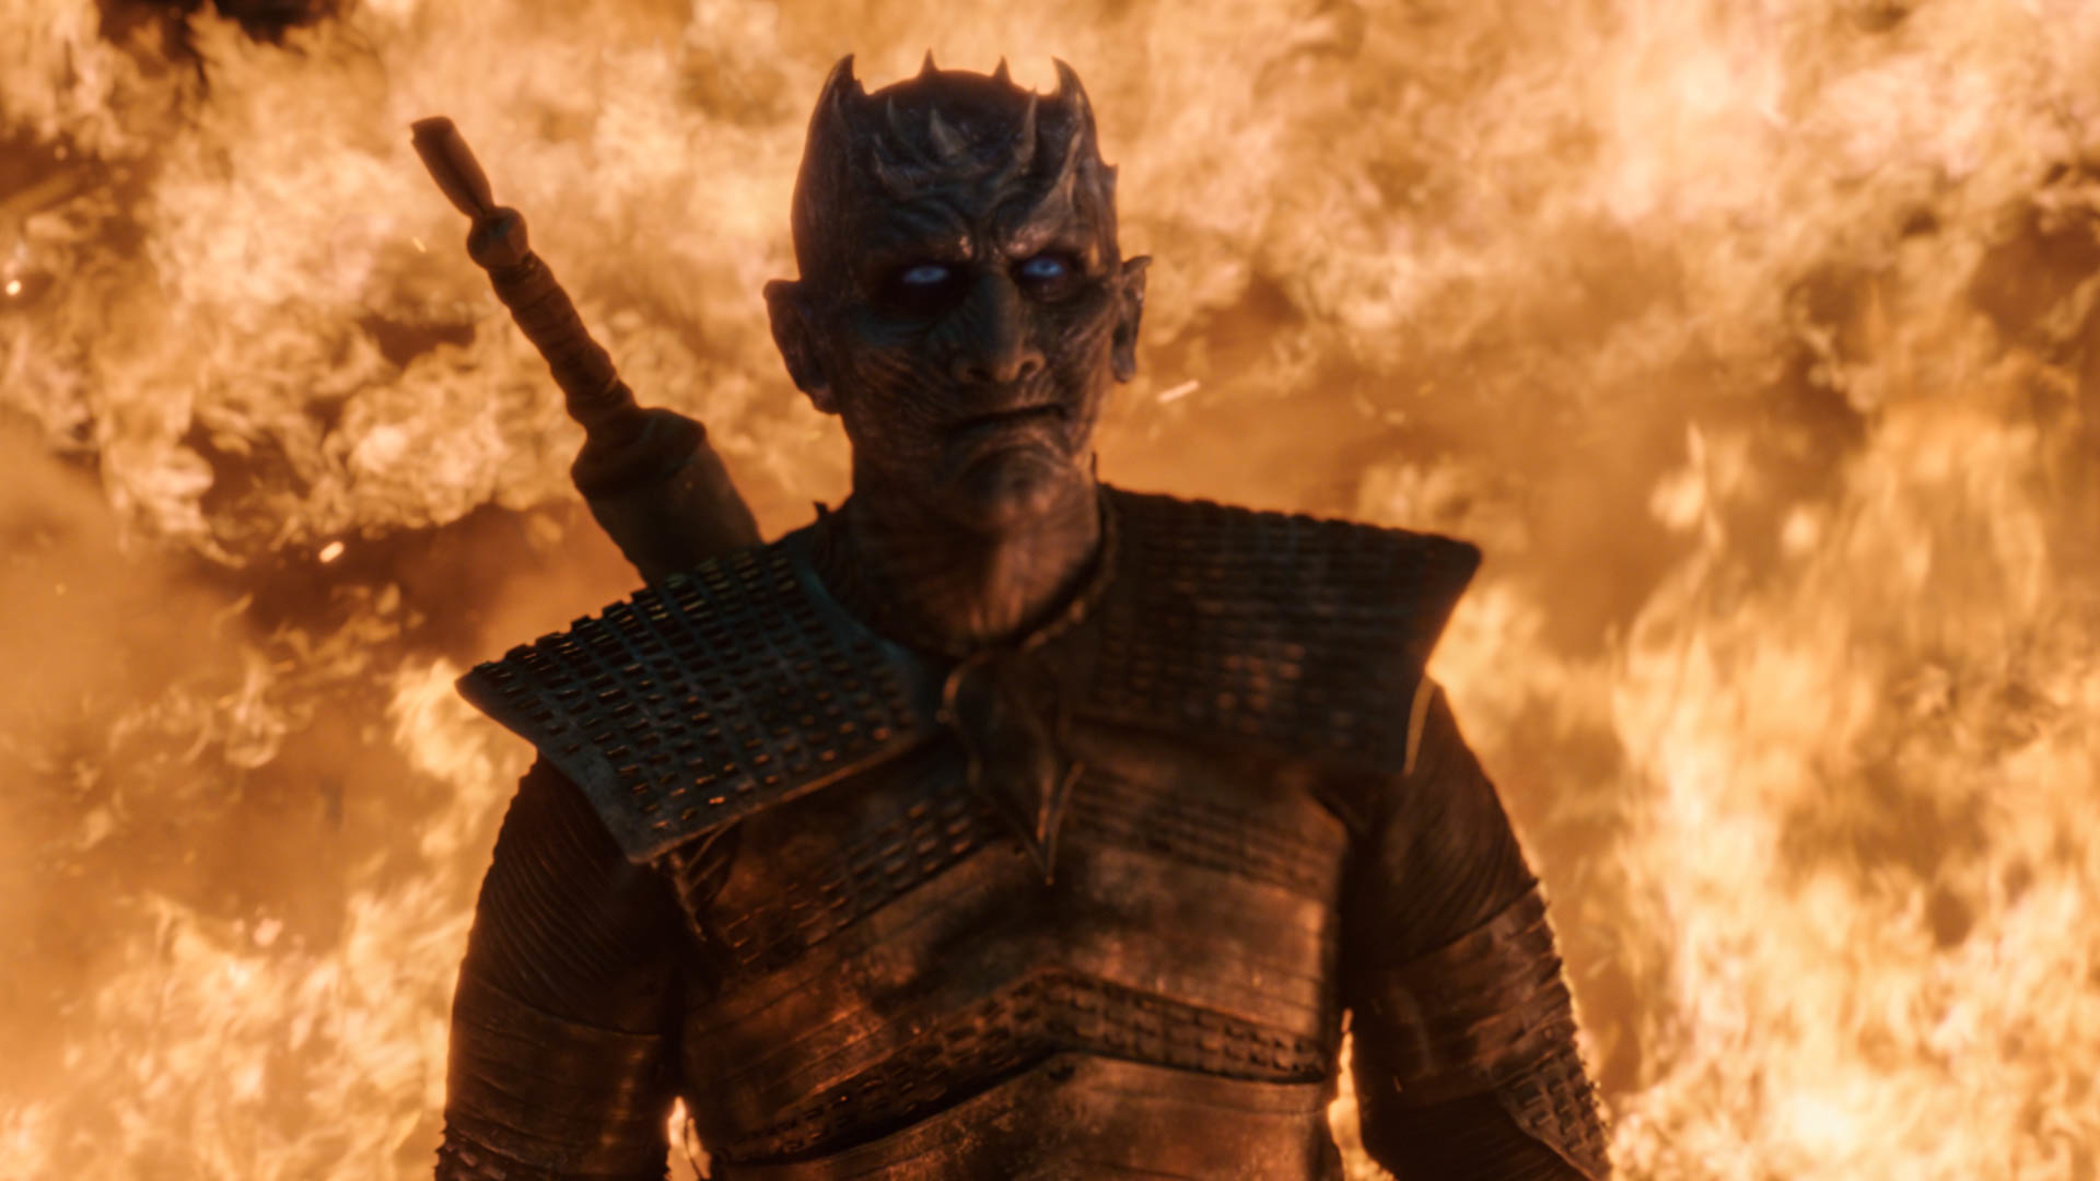 Night King Dragonfire Season 8 803 The Long Night